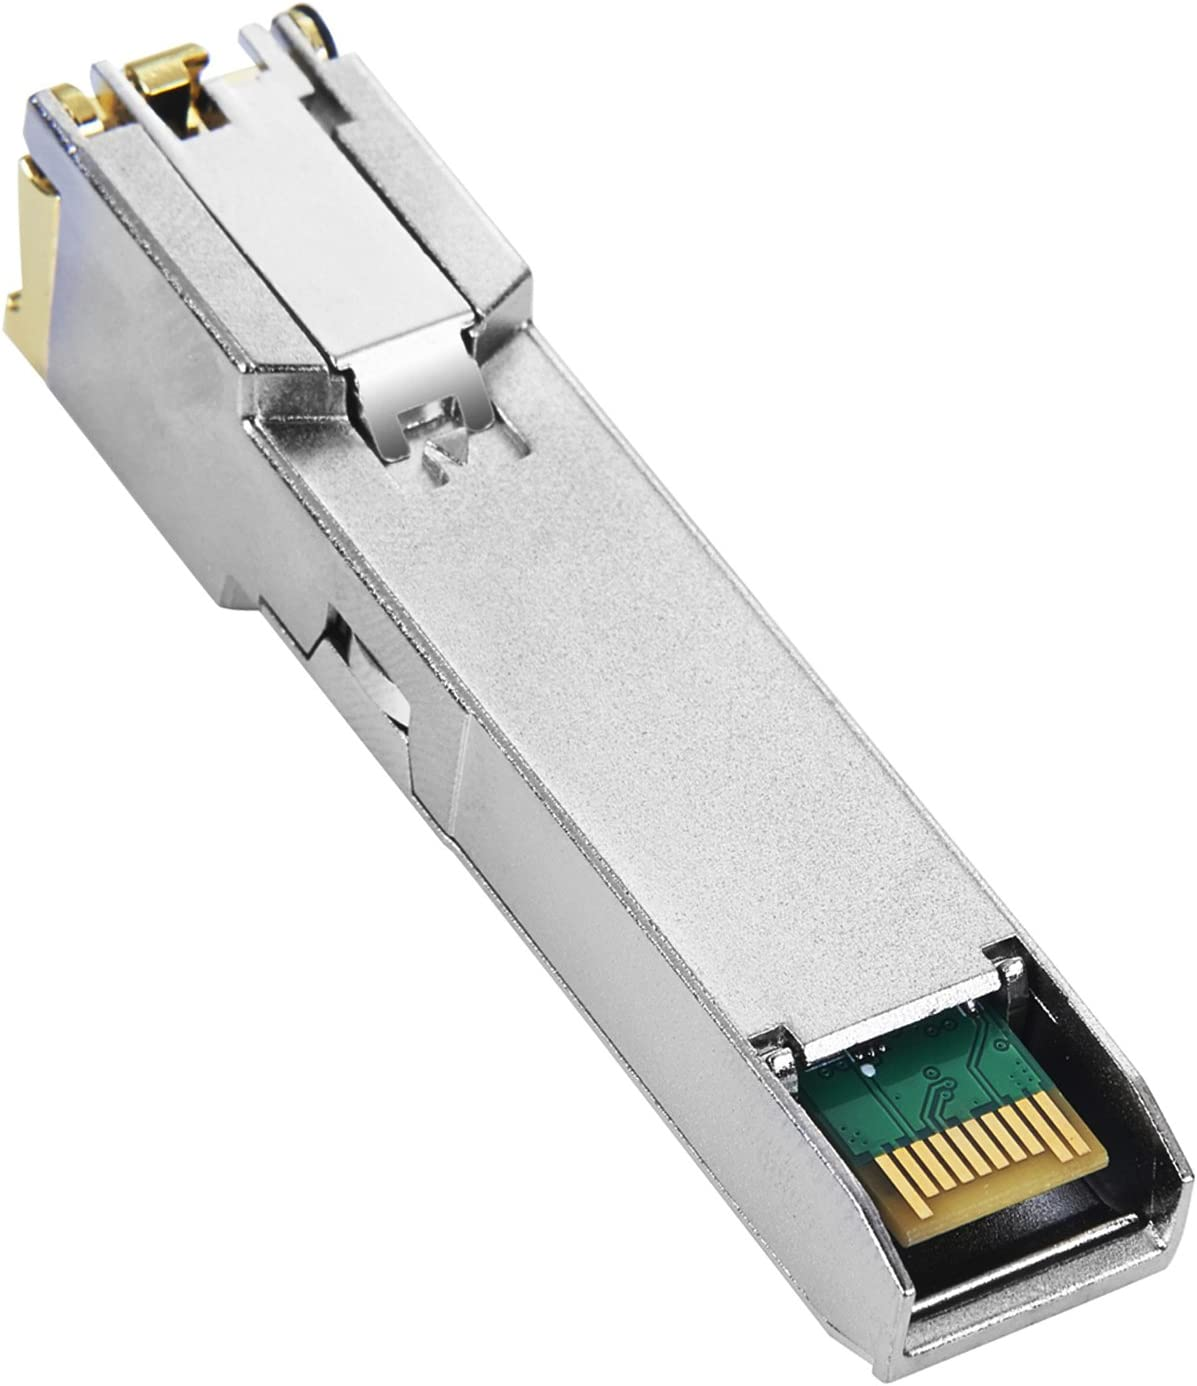 Macroreer for D-Link DEM-311GT 1000BASE-SX SFP Module Mini-GBIC Multimode 850nm up to 550-meter